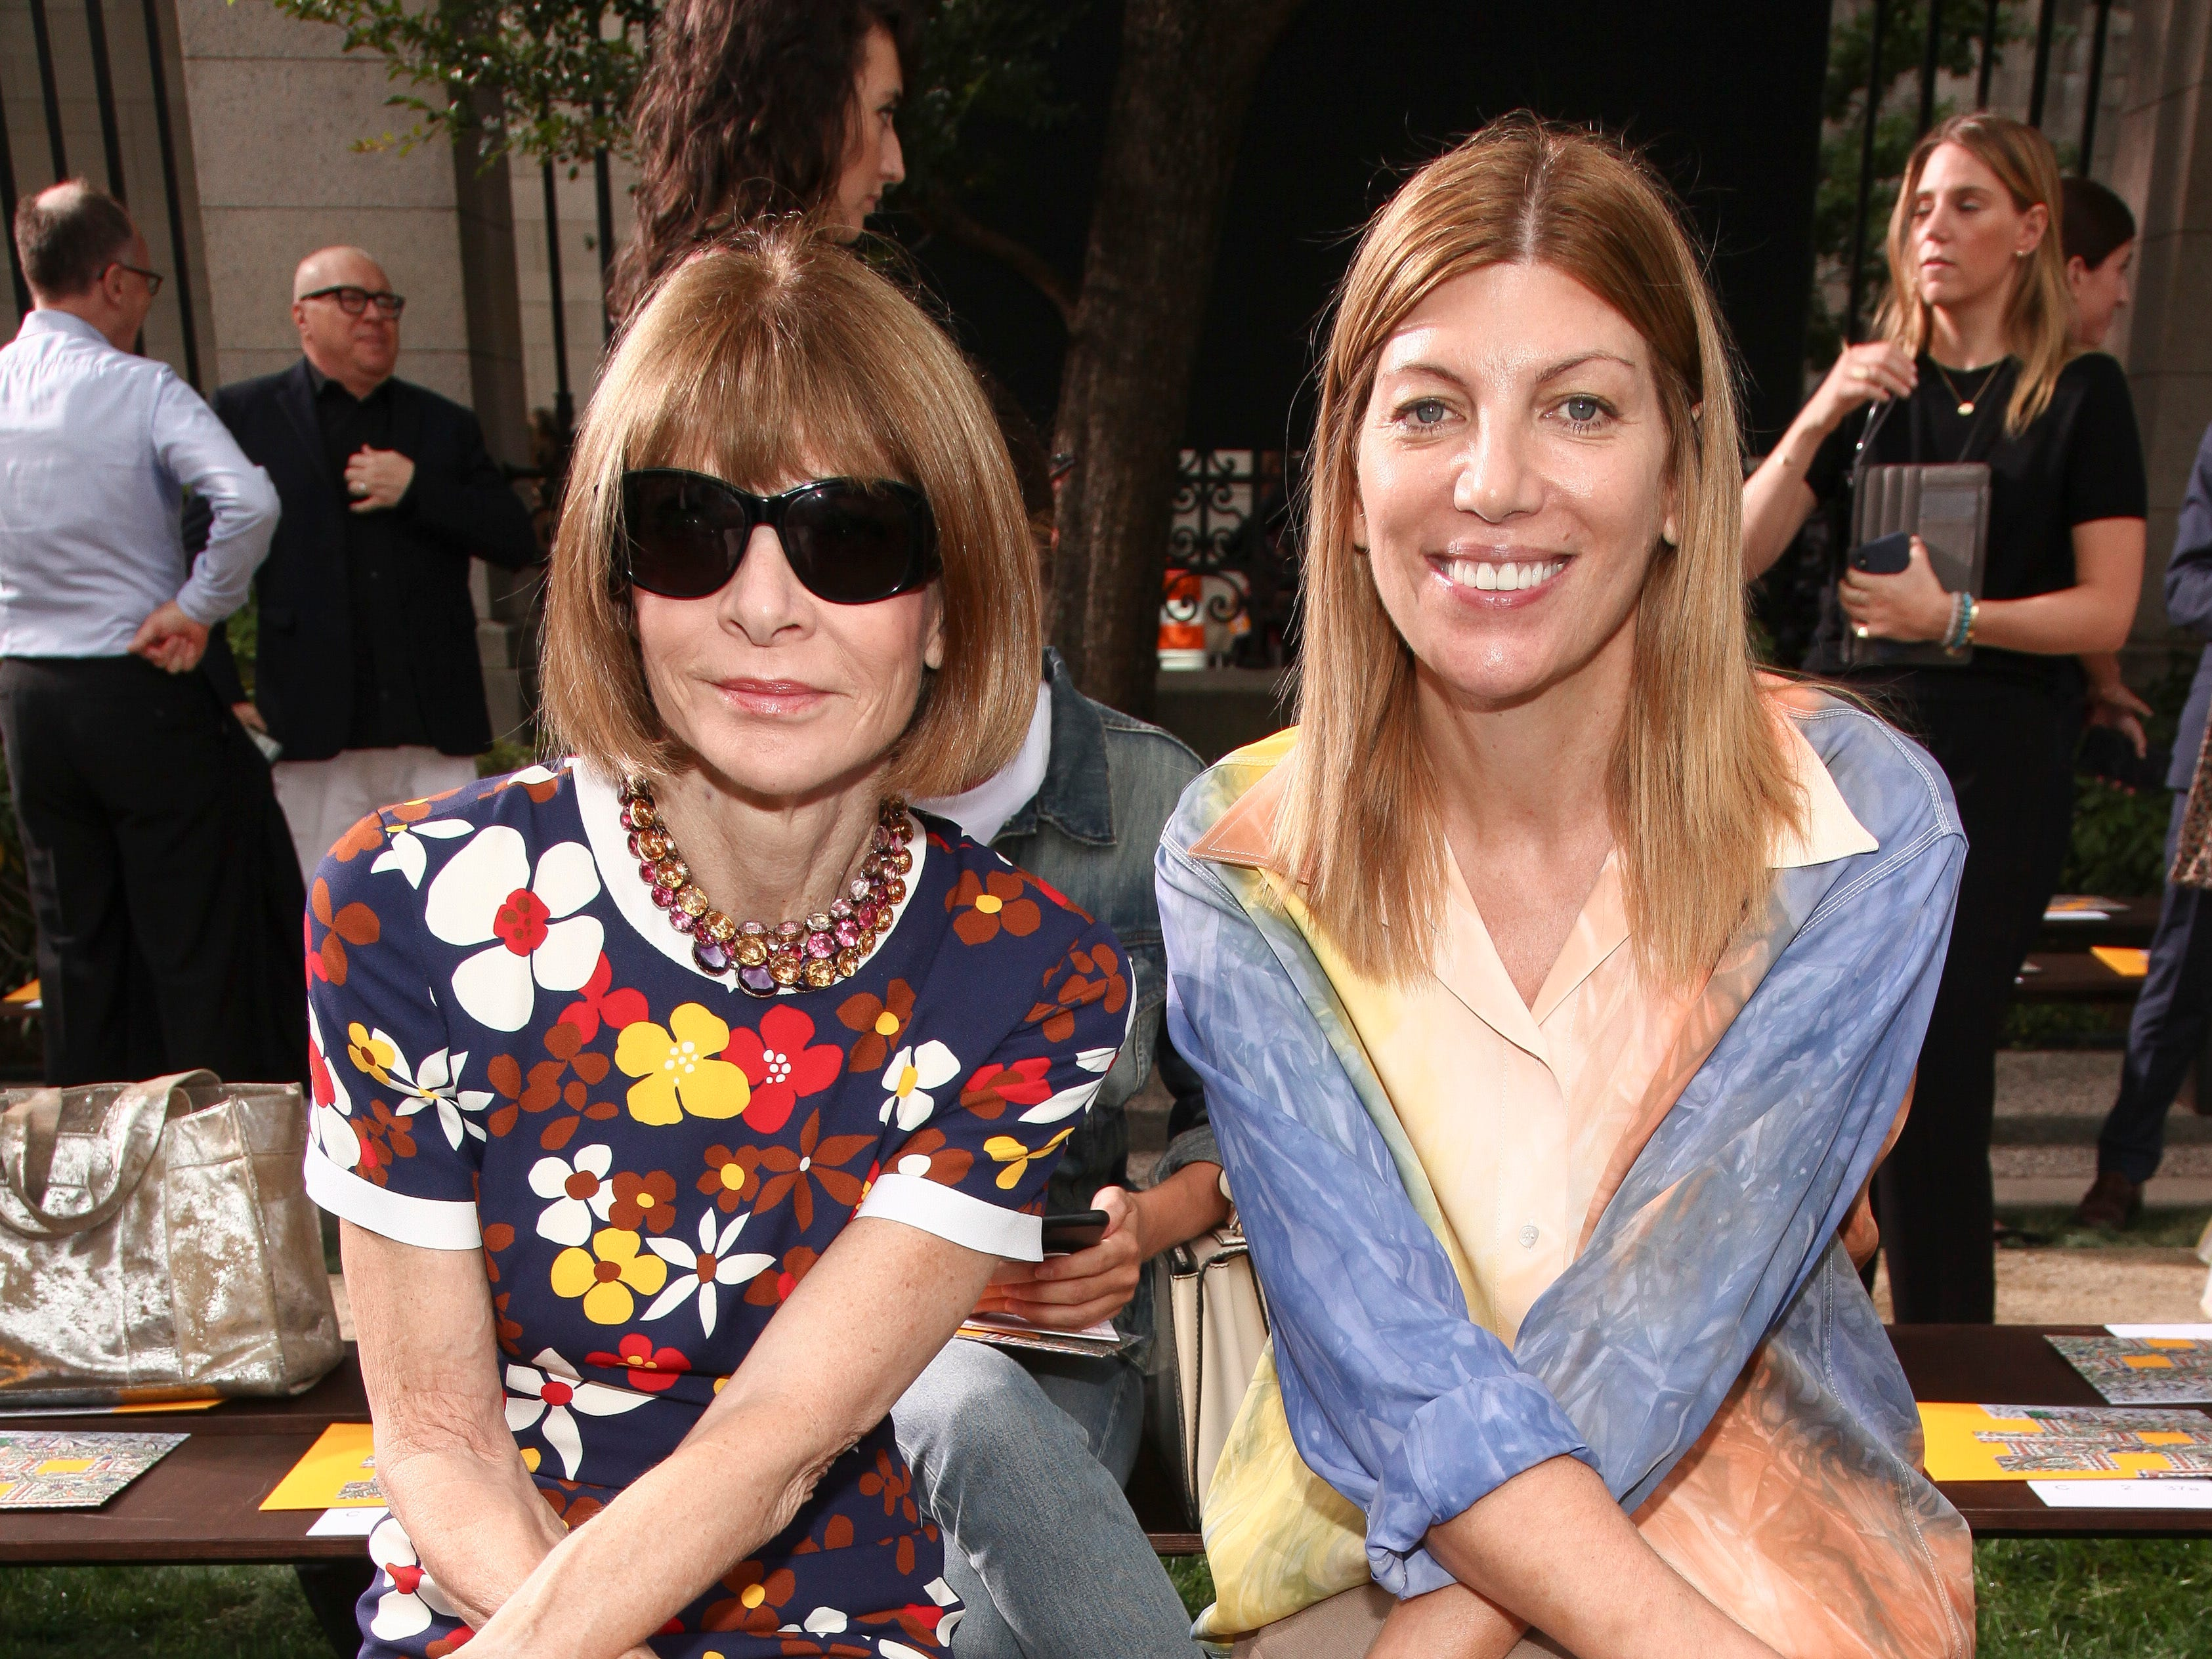 Anna Wintour, left, and Virginia Smith attend the NYFW Spring/Summer 2019 Tory Burch fashion show at the Cooper Hewitt Smithsonian Design Museum on Friday, Sept. 7, 2018, in New York. (Photo by Andy Kropa/Invision/AP) ORG XMIT: NYAK105